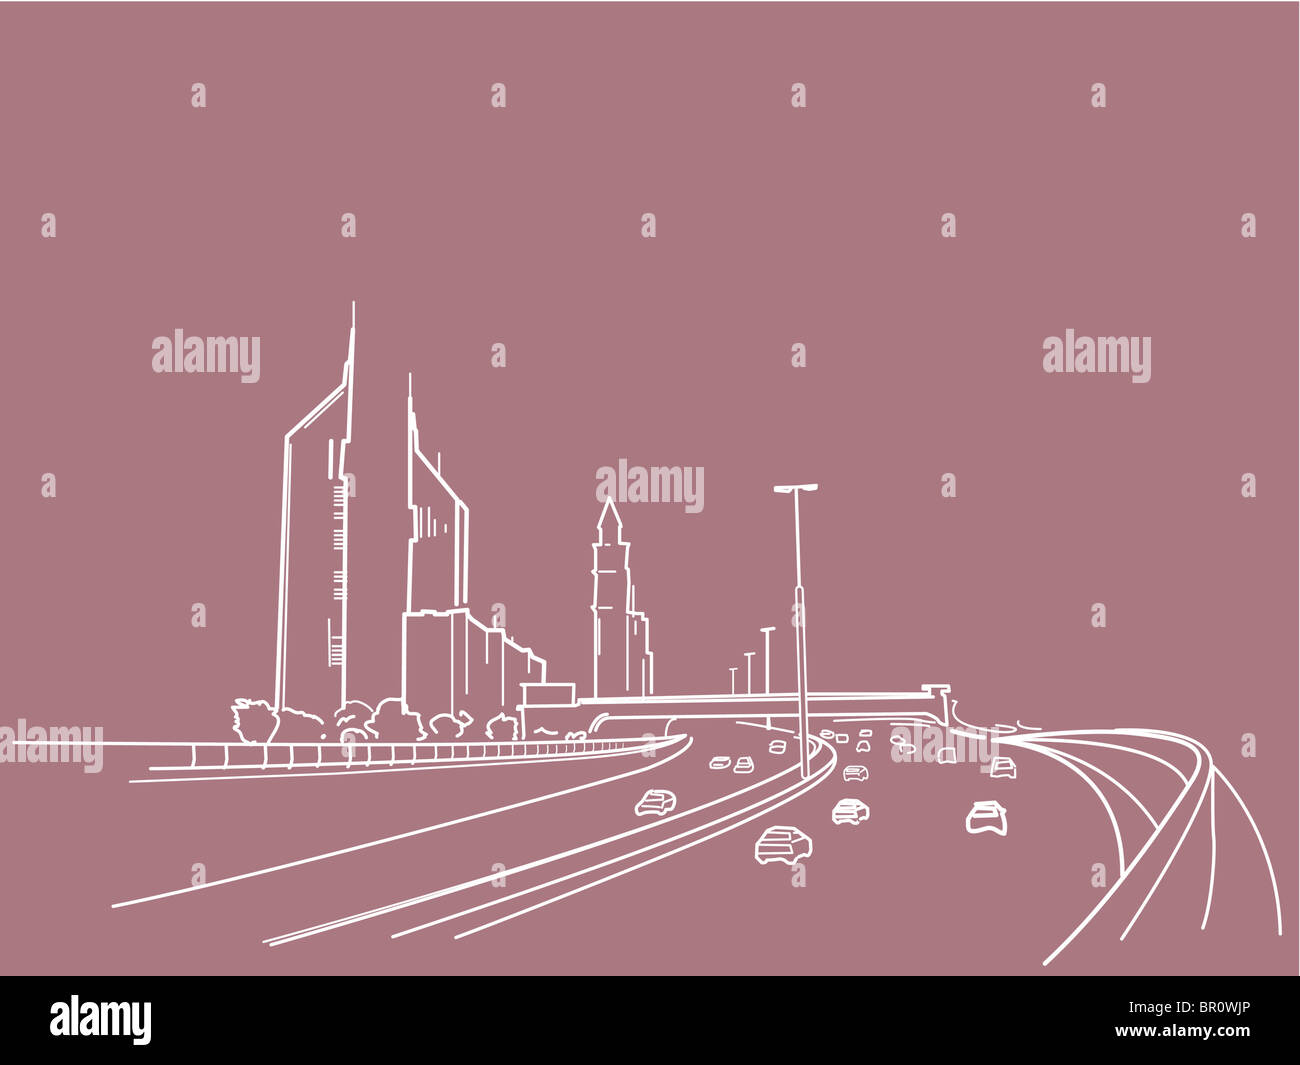 An illustration of a freeway - Stock Image